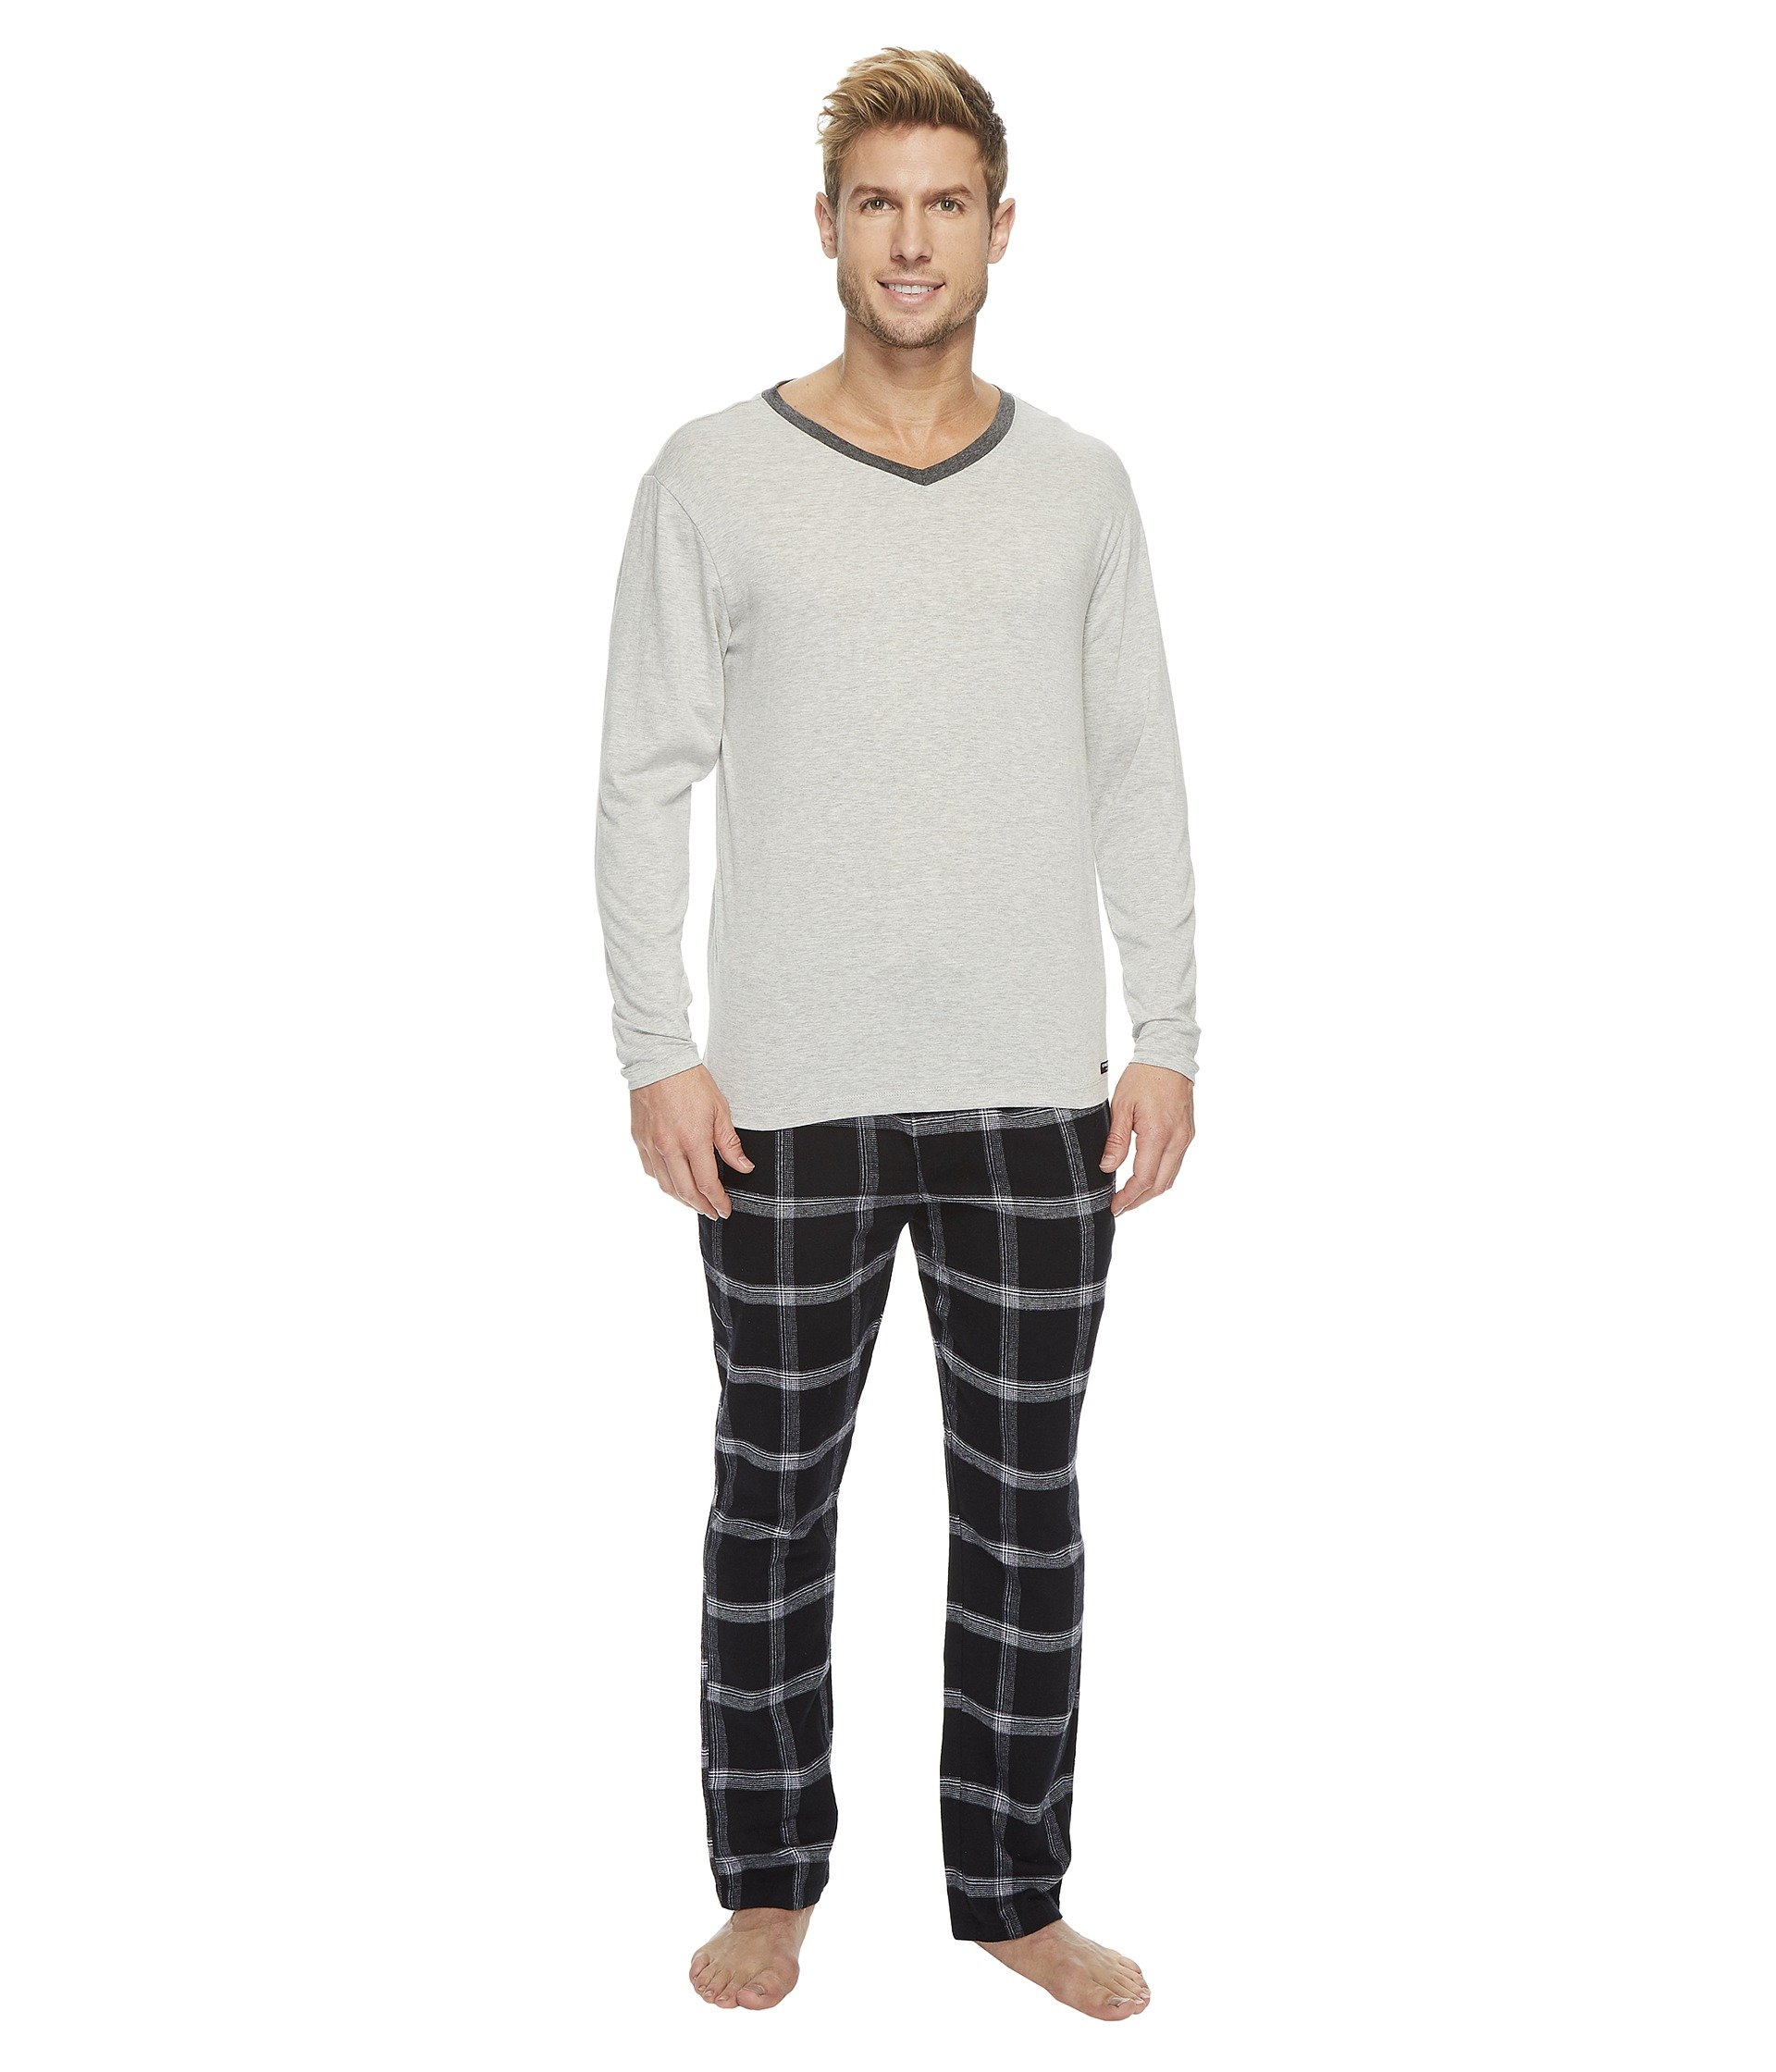 Pijama para Hombre Kenneth Cole Reaction V-Neck and Flannel Pants Set  + Kenneth Cole Reaction en VeoyCompro.net